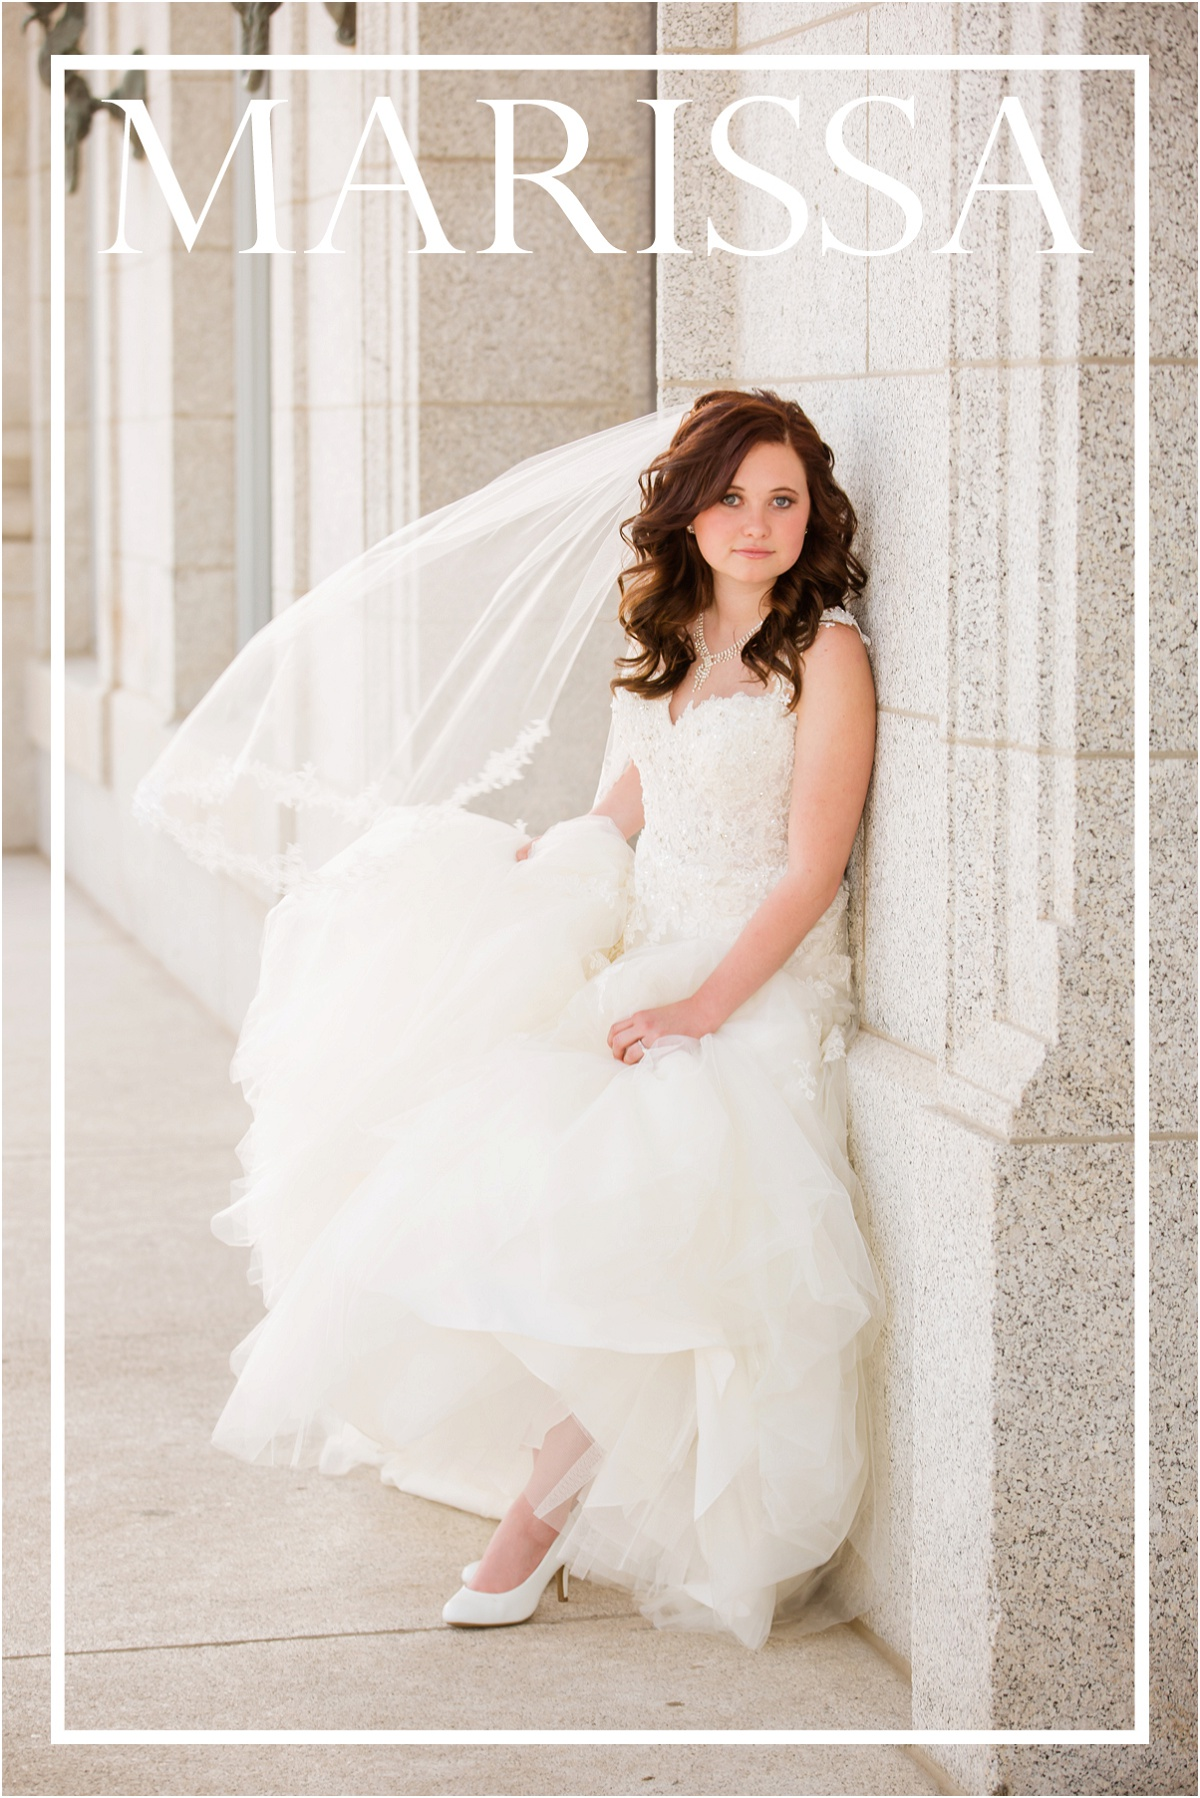 Terra Cooper Photography Weddings Brides 2015_5395.jpg